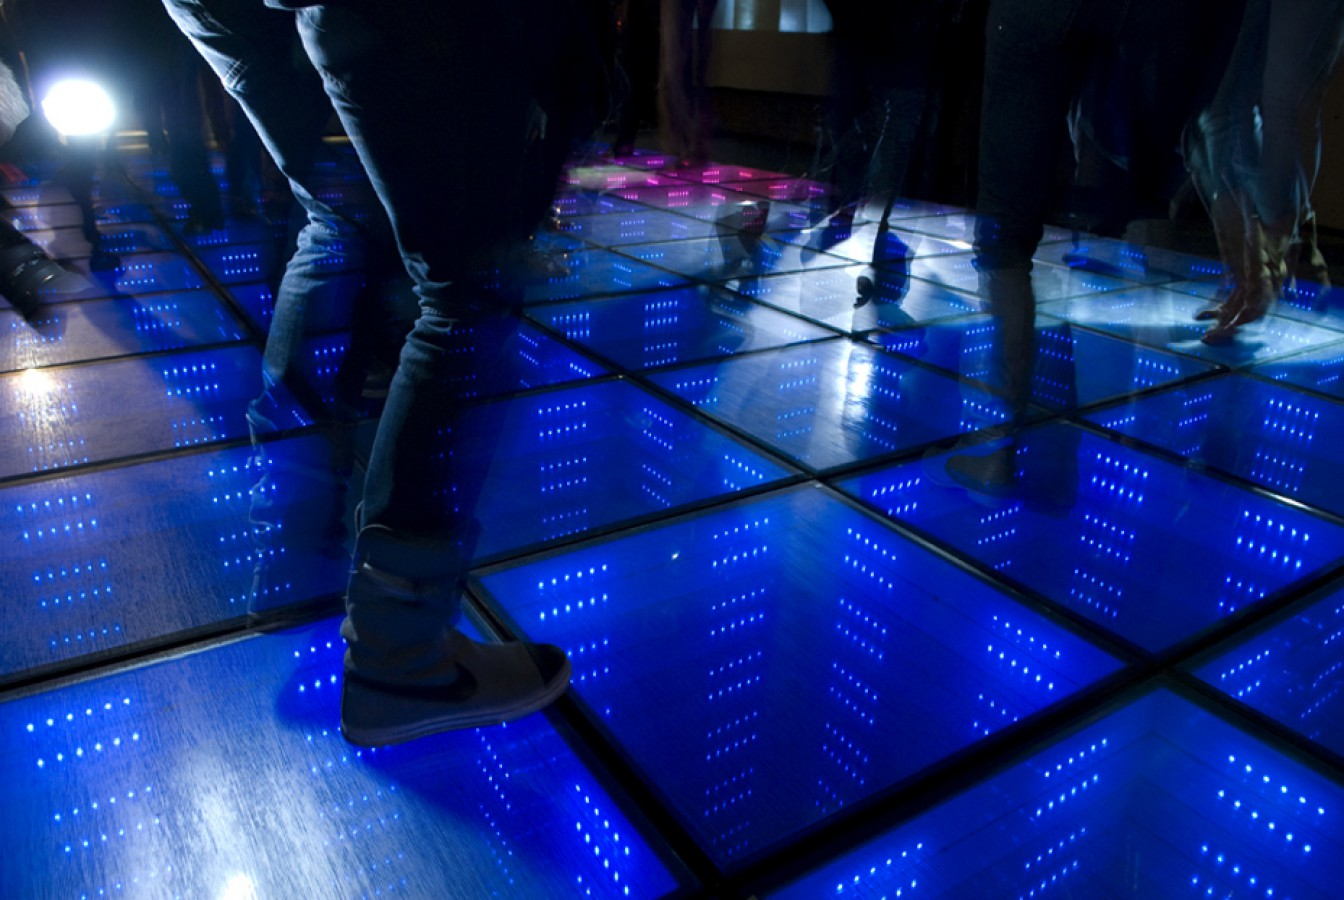 Studio roosegaarde sustainable dance floor photos for Studio floor